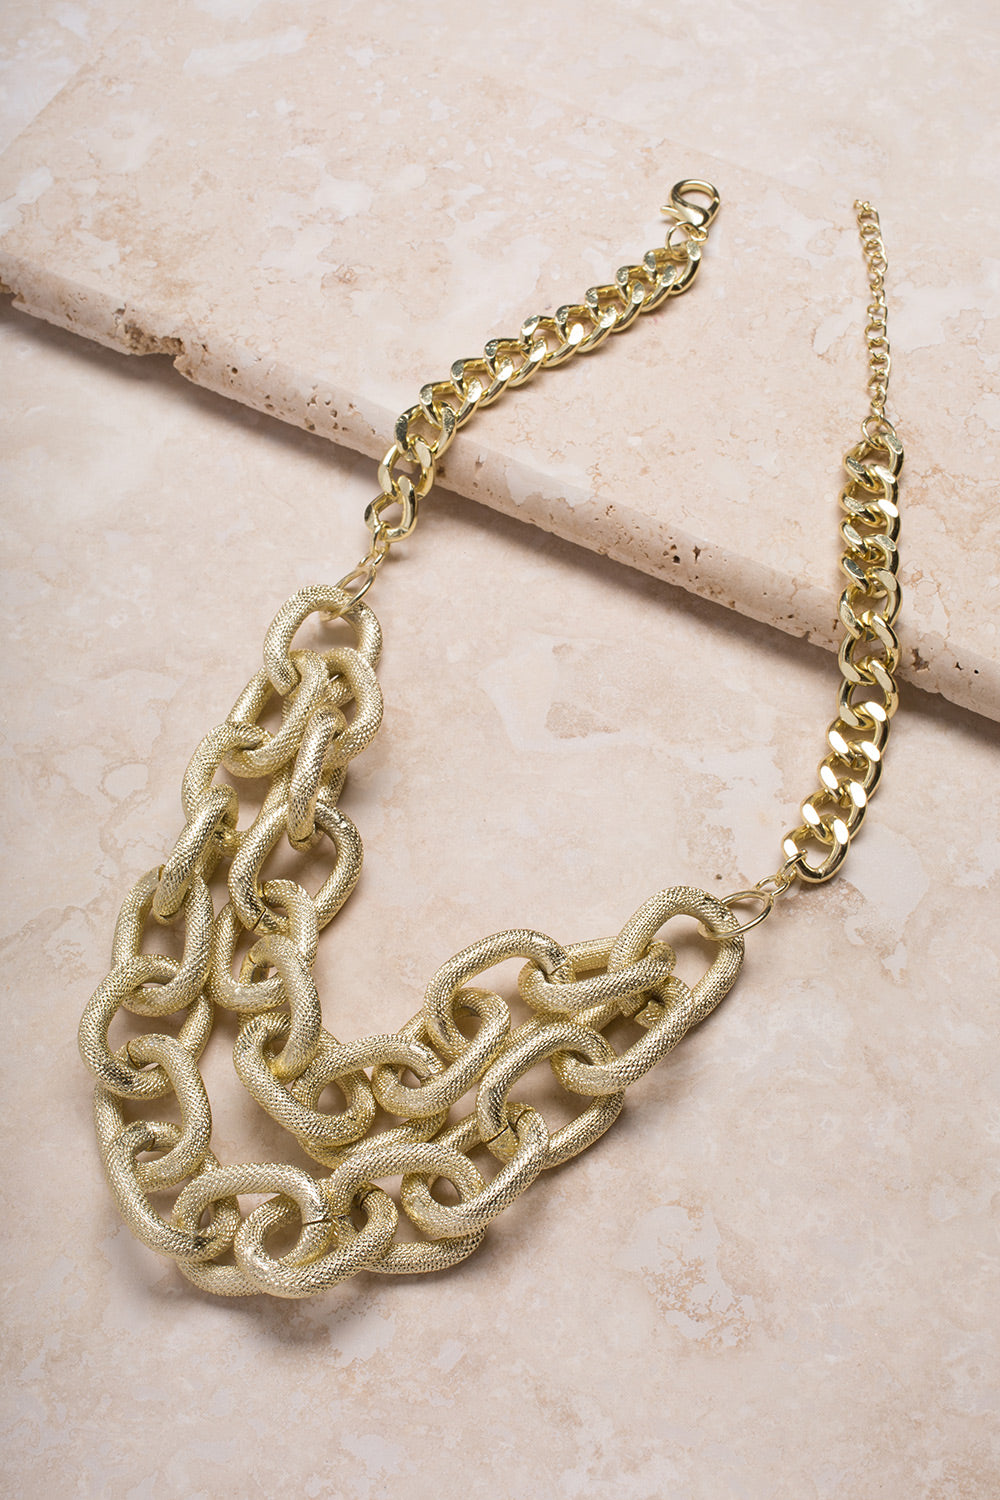 Type 3 Unchained Necklace